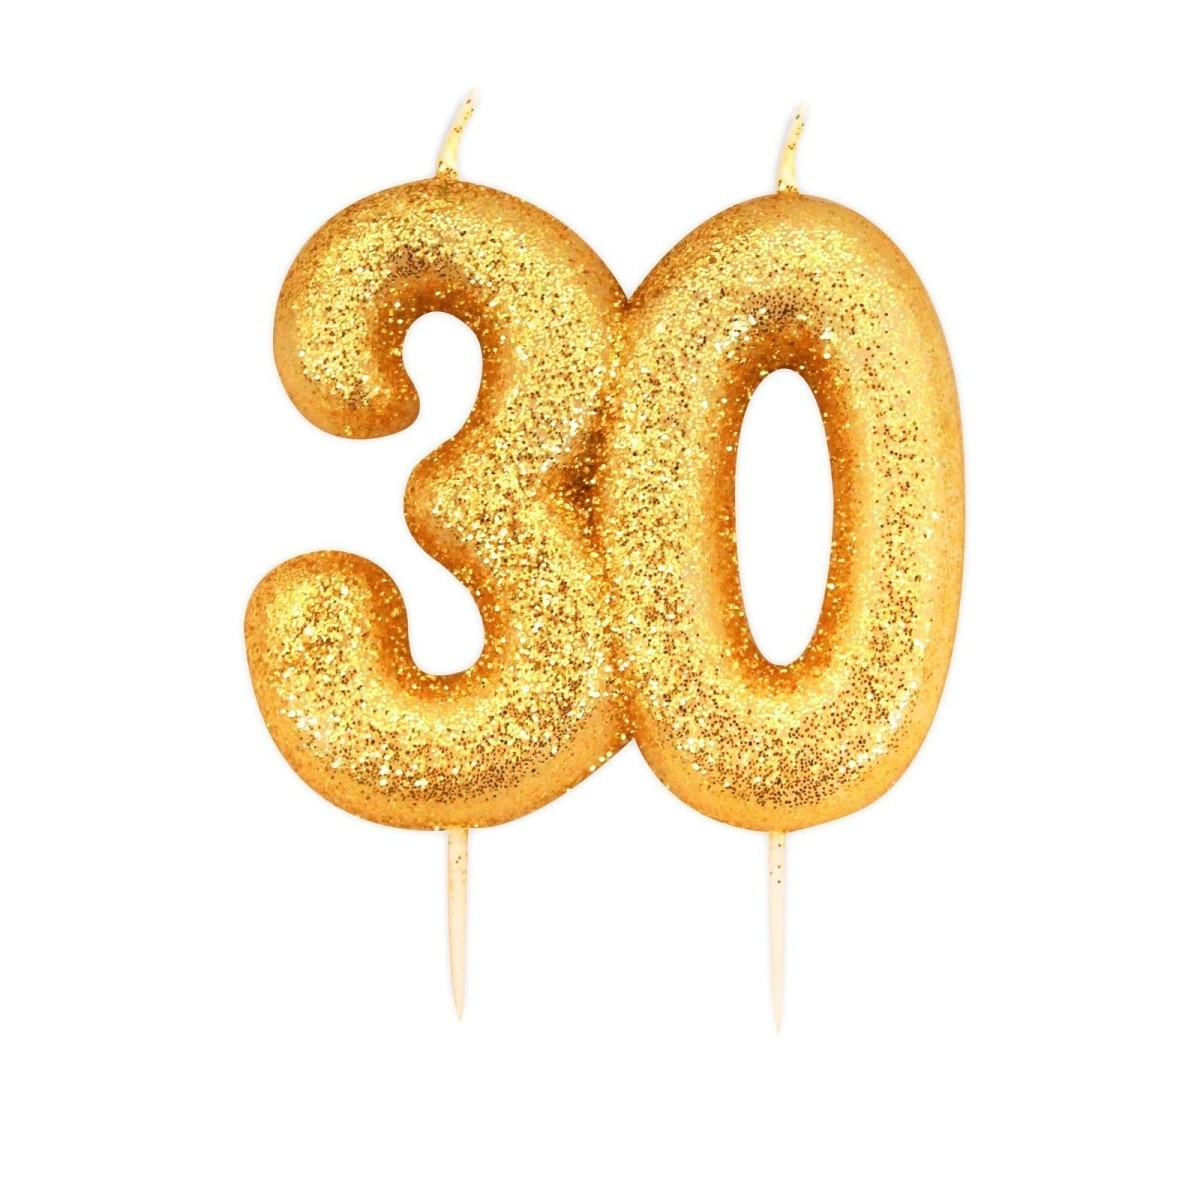 Buy 30 Gold Glitter Number Candle Online